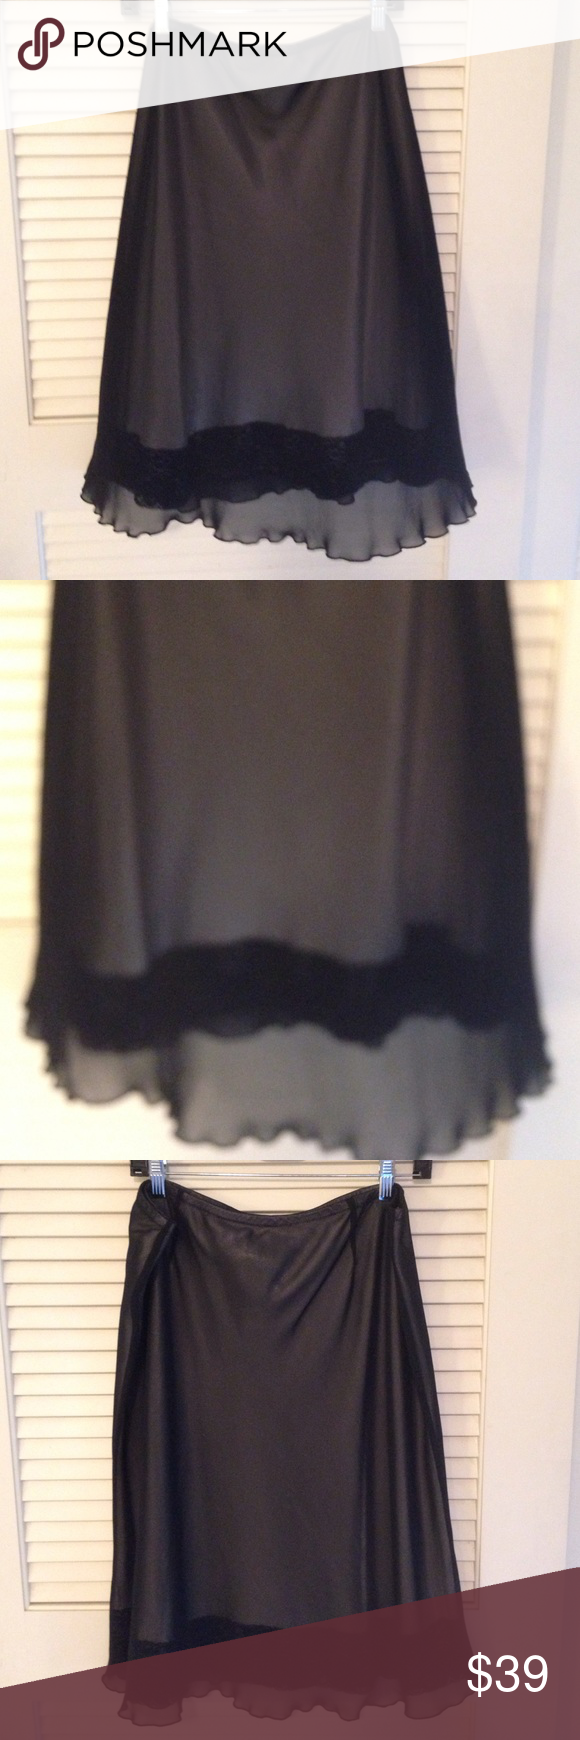 For The Republic skirt For The Republic skirt nude with black overlay. Very pretty lace trim and a trace of shimmer For The Republic Skirts Midi